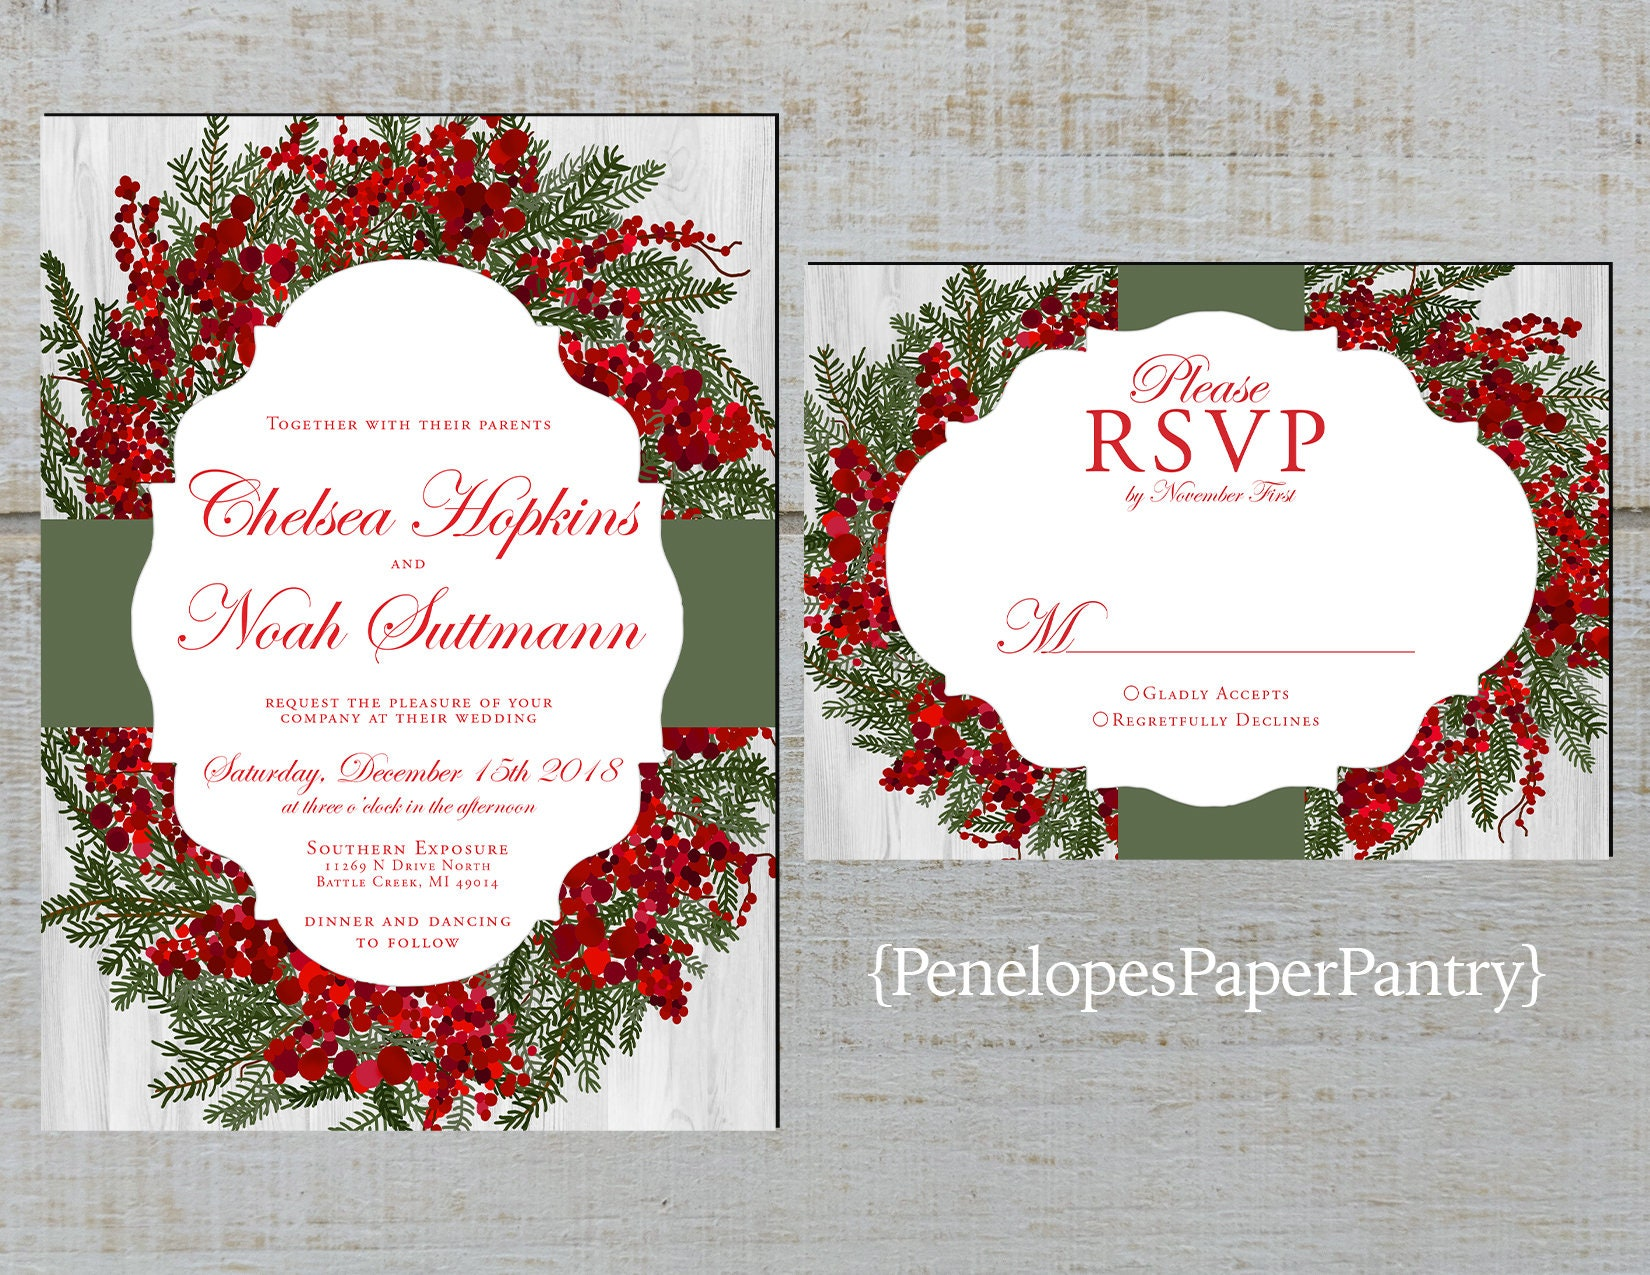 Elegant Christmas Wedding InvitationsRustic Red and Green | Etsy